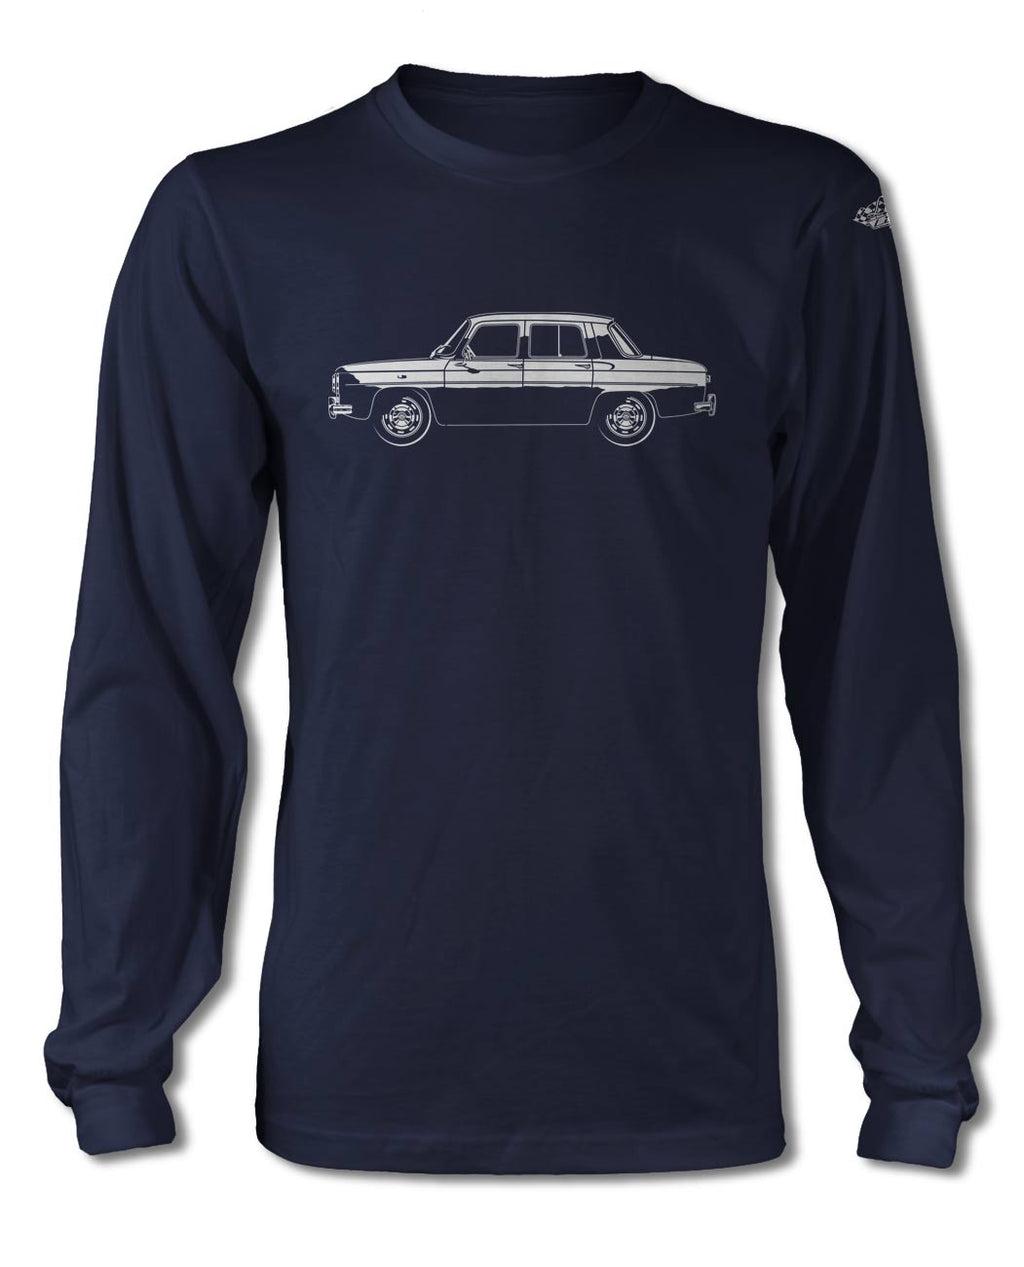 Renault 8 Gordini 1964 – 1974 T-Shirt - Long Sleeves - Side View